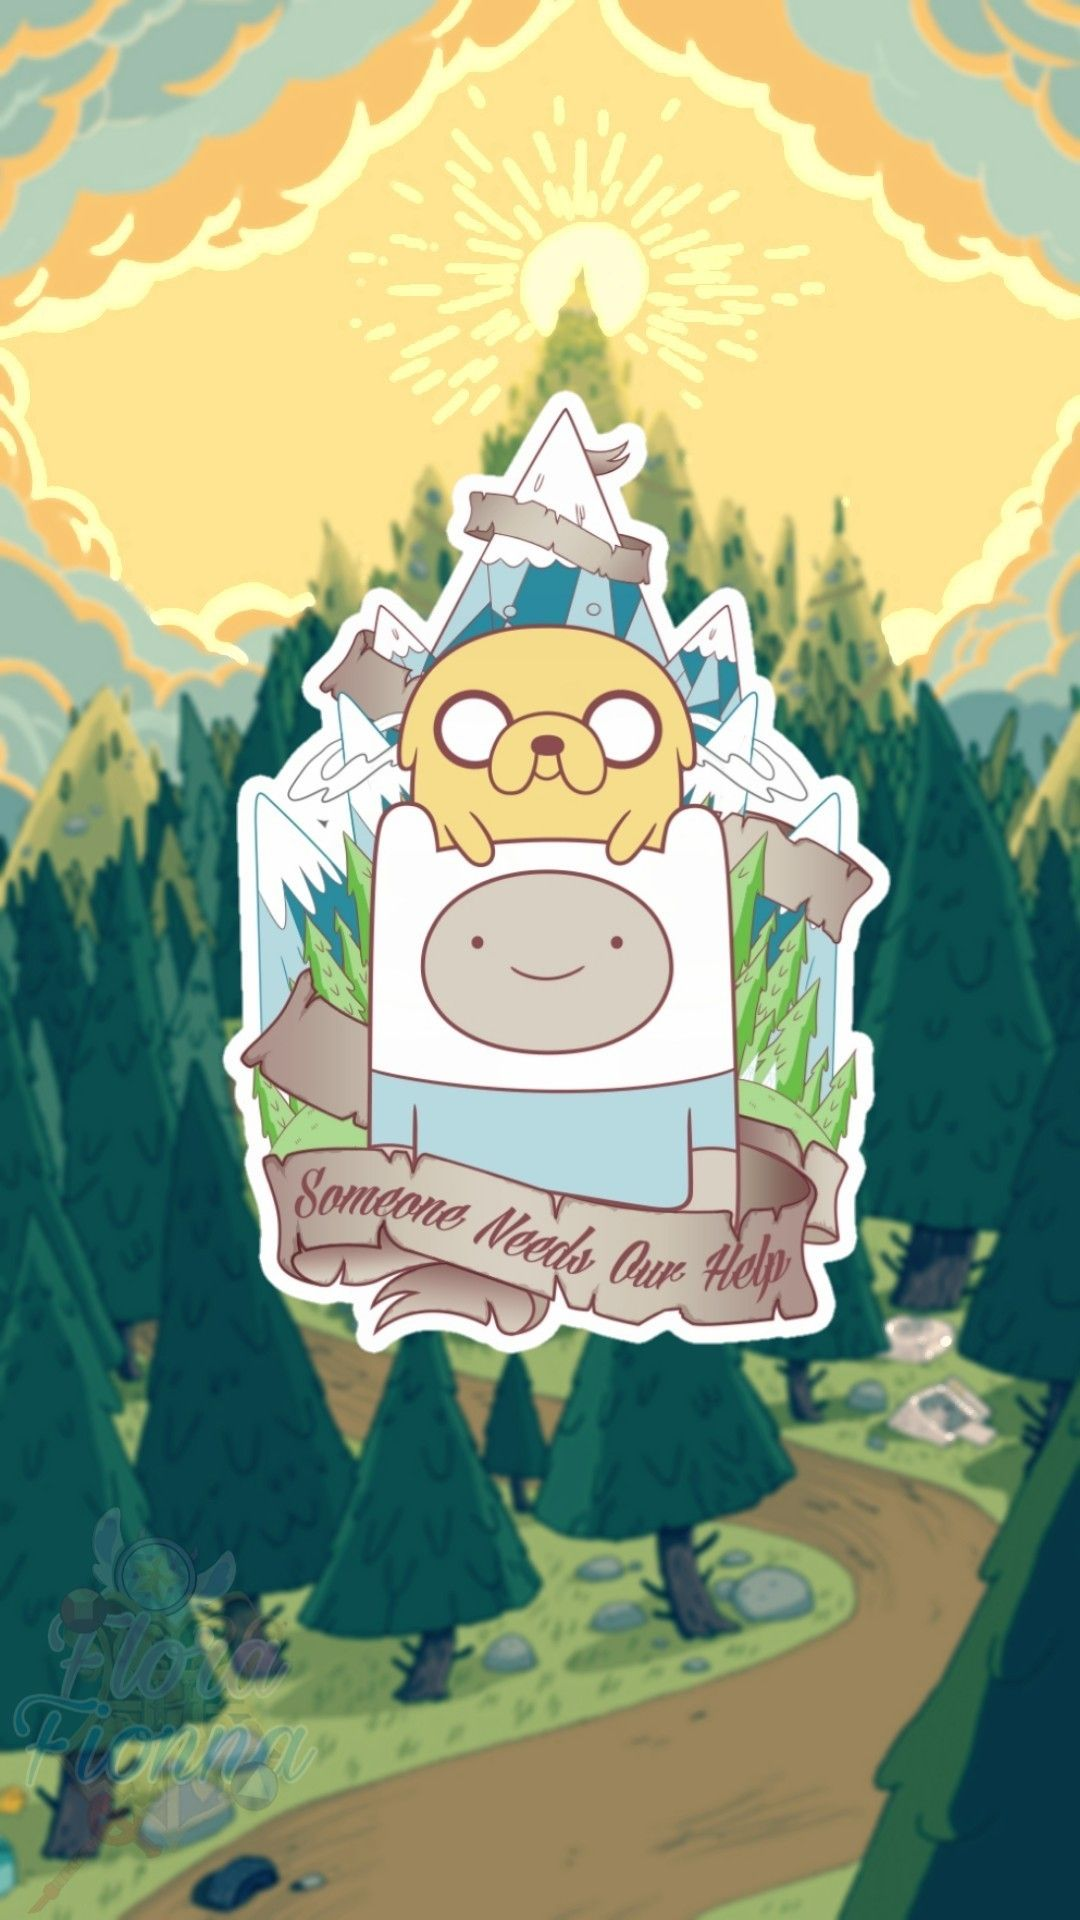 Aesthetic Adventure Time Wallpaper Mobile Adventure Time Wallpaper Adventure Time Iphone Wallpaper Cartoon Wallpaper Iphone